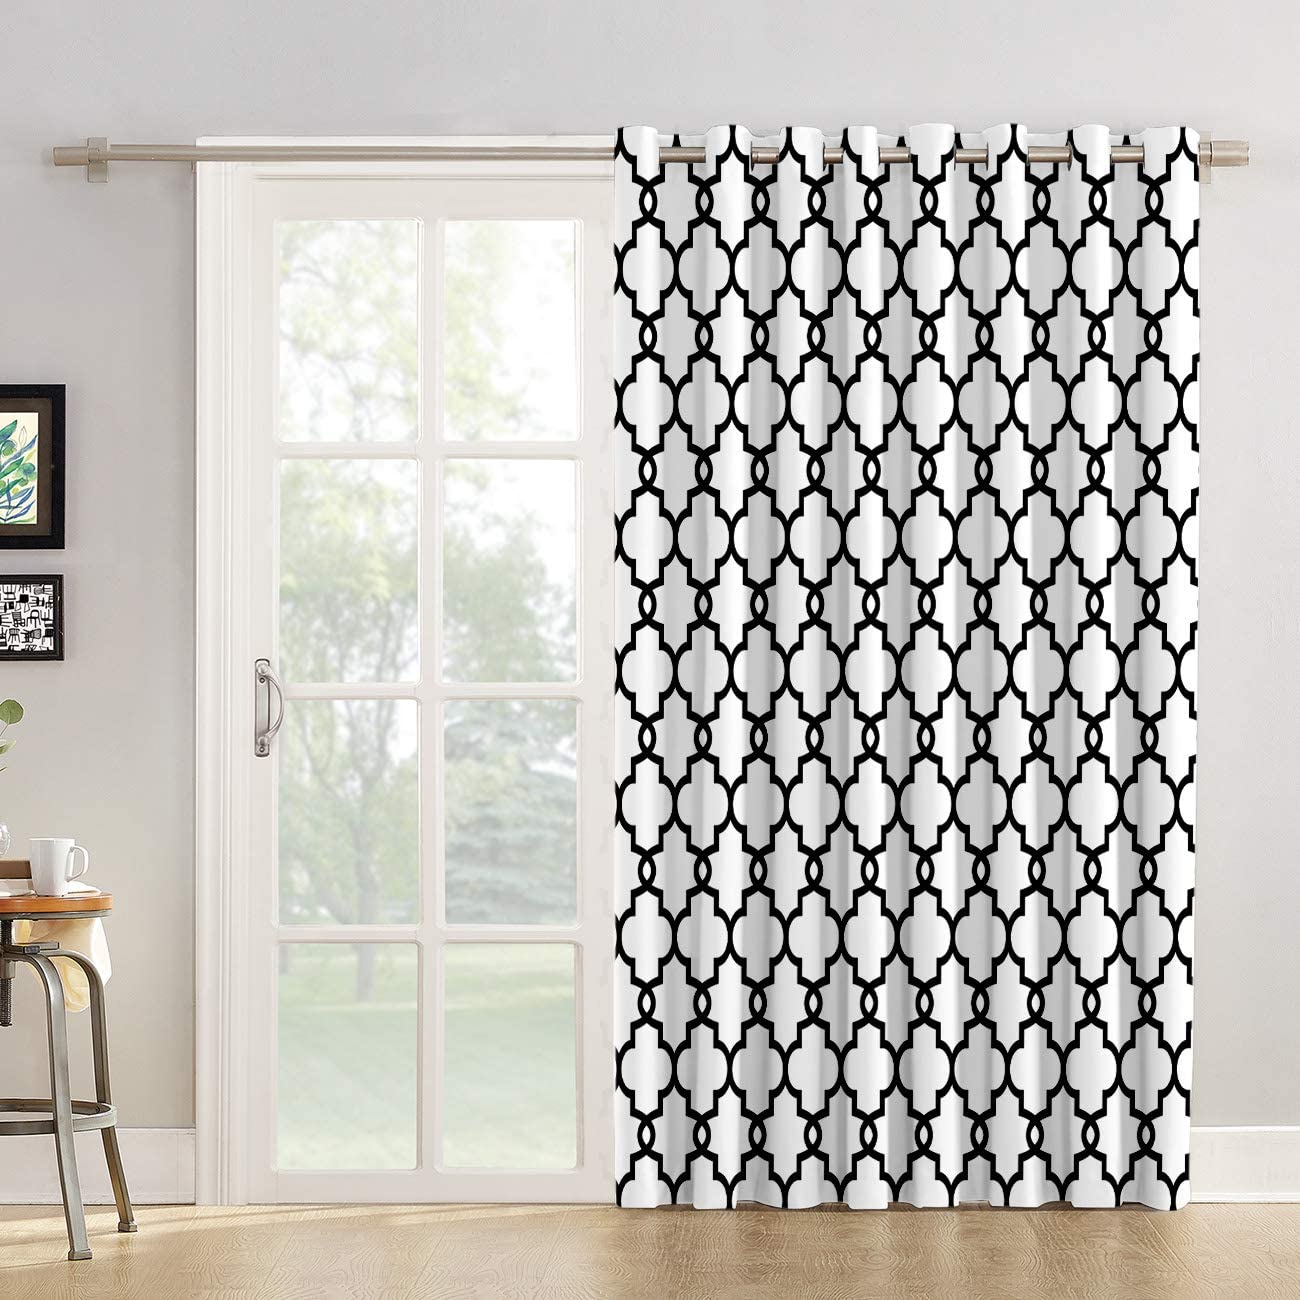 Futuregrace Blackout Curtains Moroccan Trellis Pattern Livingroom Bedroom Darkening Window Draperies Curtains for Sliding Glass Door Home Office Decor 52 W by 96 L